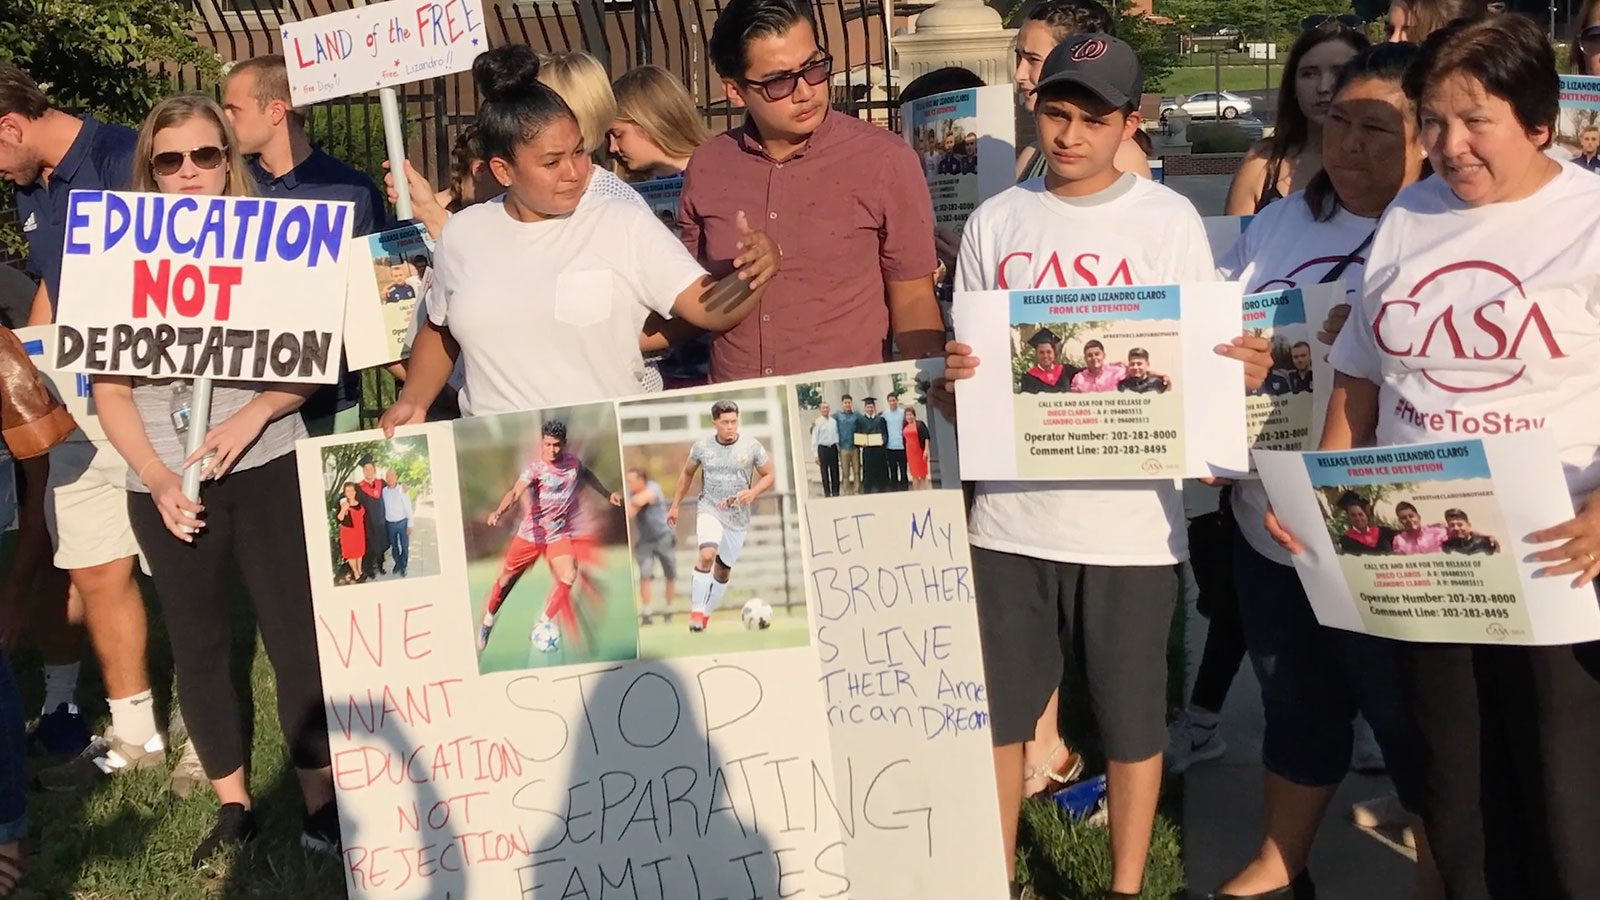 Friends and family protest in support of the Saravia brothers